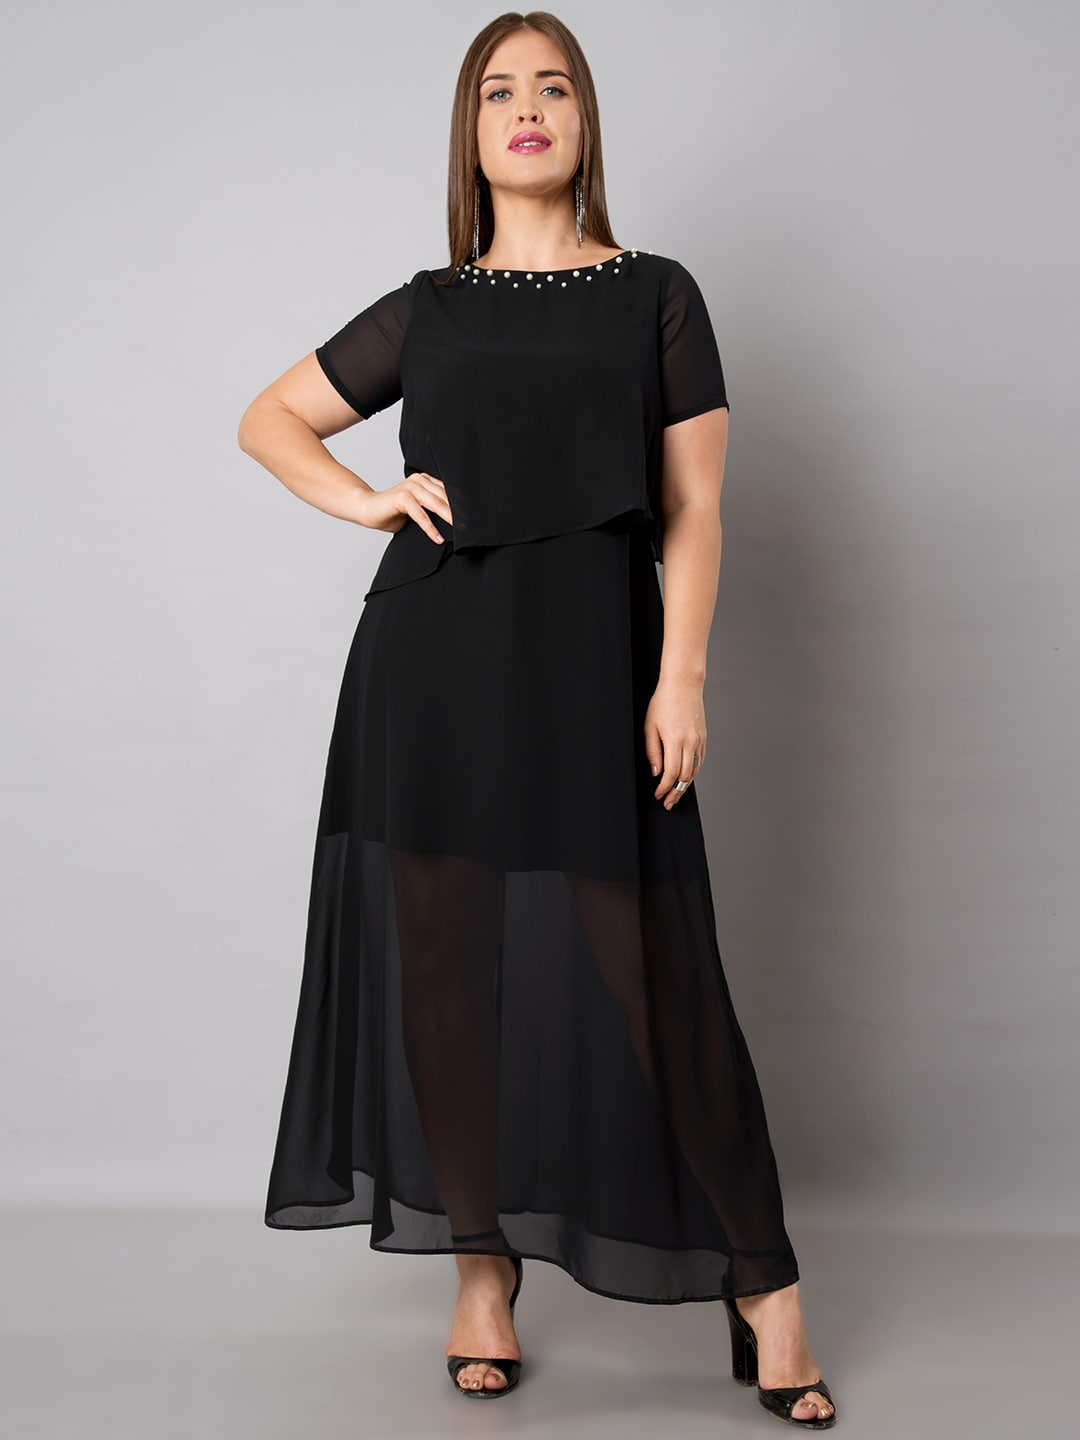 dbd8c483e1f Faballey Curve Dresses - Buy Faballey Curve Dresses online in India